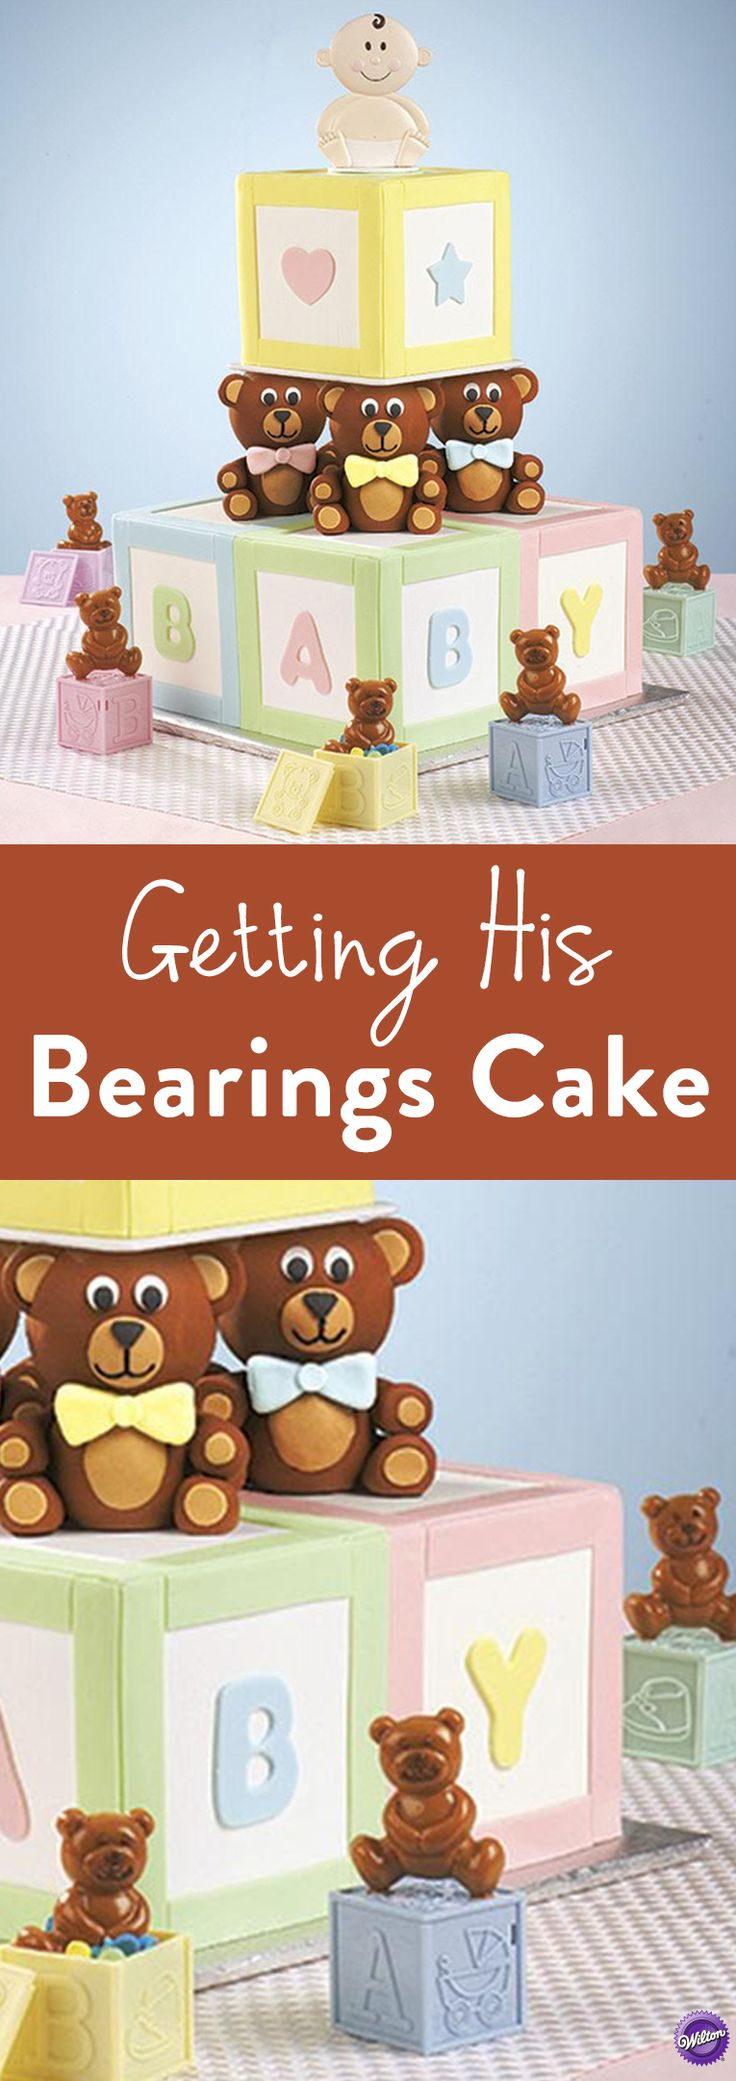 Getting His BEARings Cake - At your next baby shower, serve a fetching confection detailed with building-block graphics and teddy bear columns. Use fondant and Wilton Globe Pillar Sets to form the furry-friend supports.